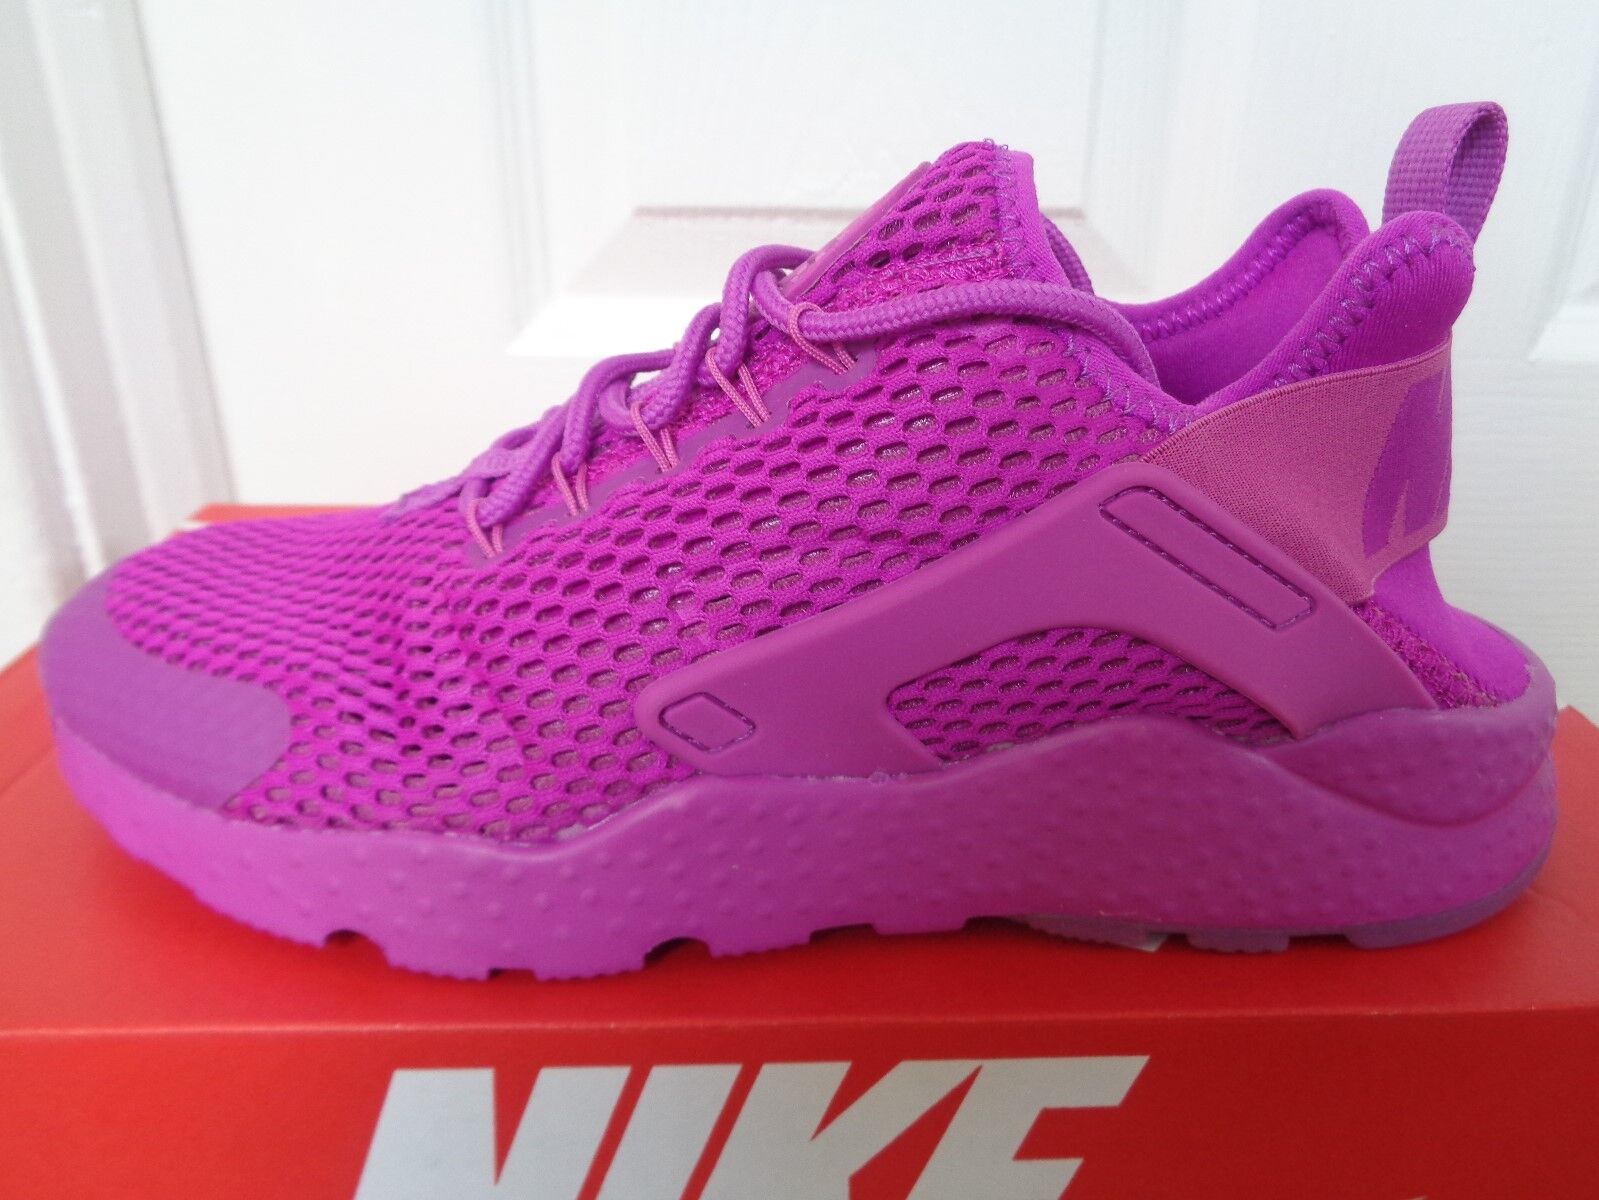 Nike Air Huarache Run Ultra uk BR trainers 833292 500 uk Ultra 5 eu 38.5 us 7.5 NEW+BOX 2501d8